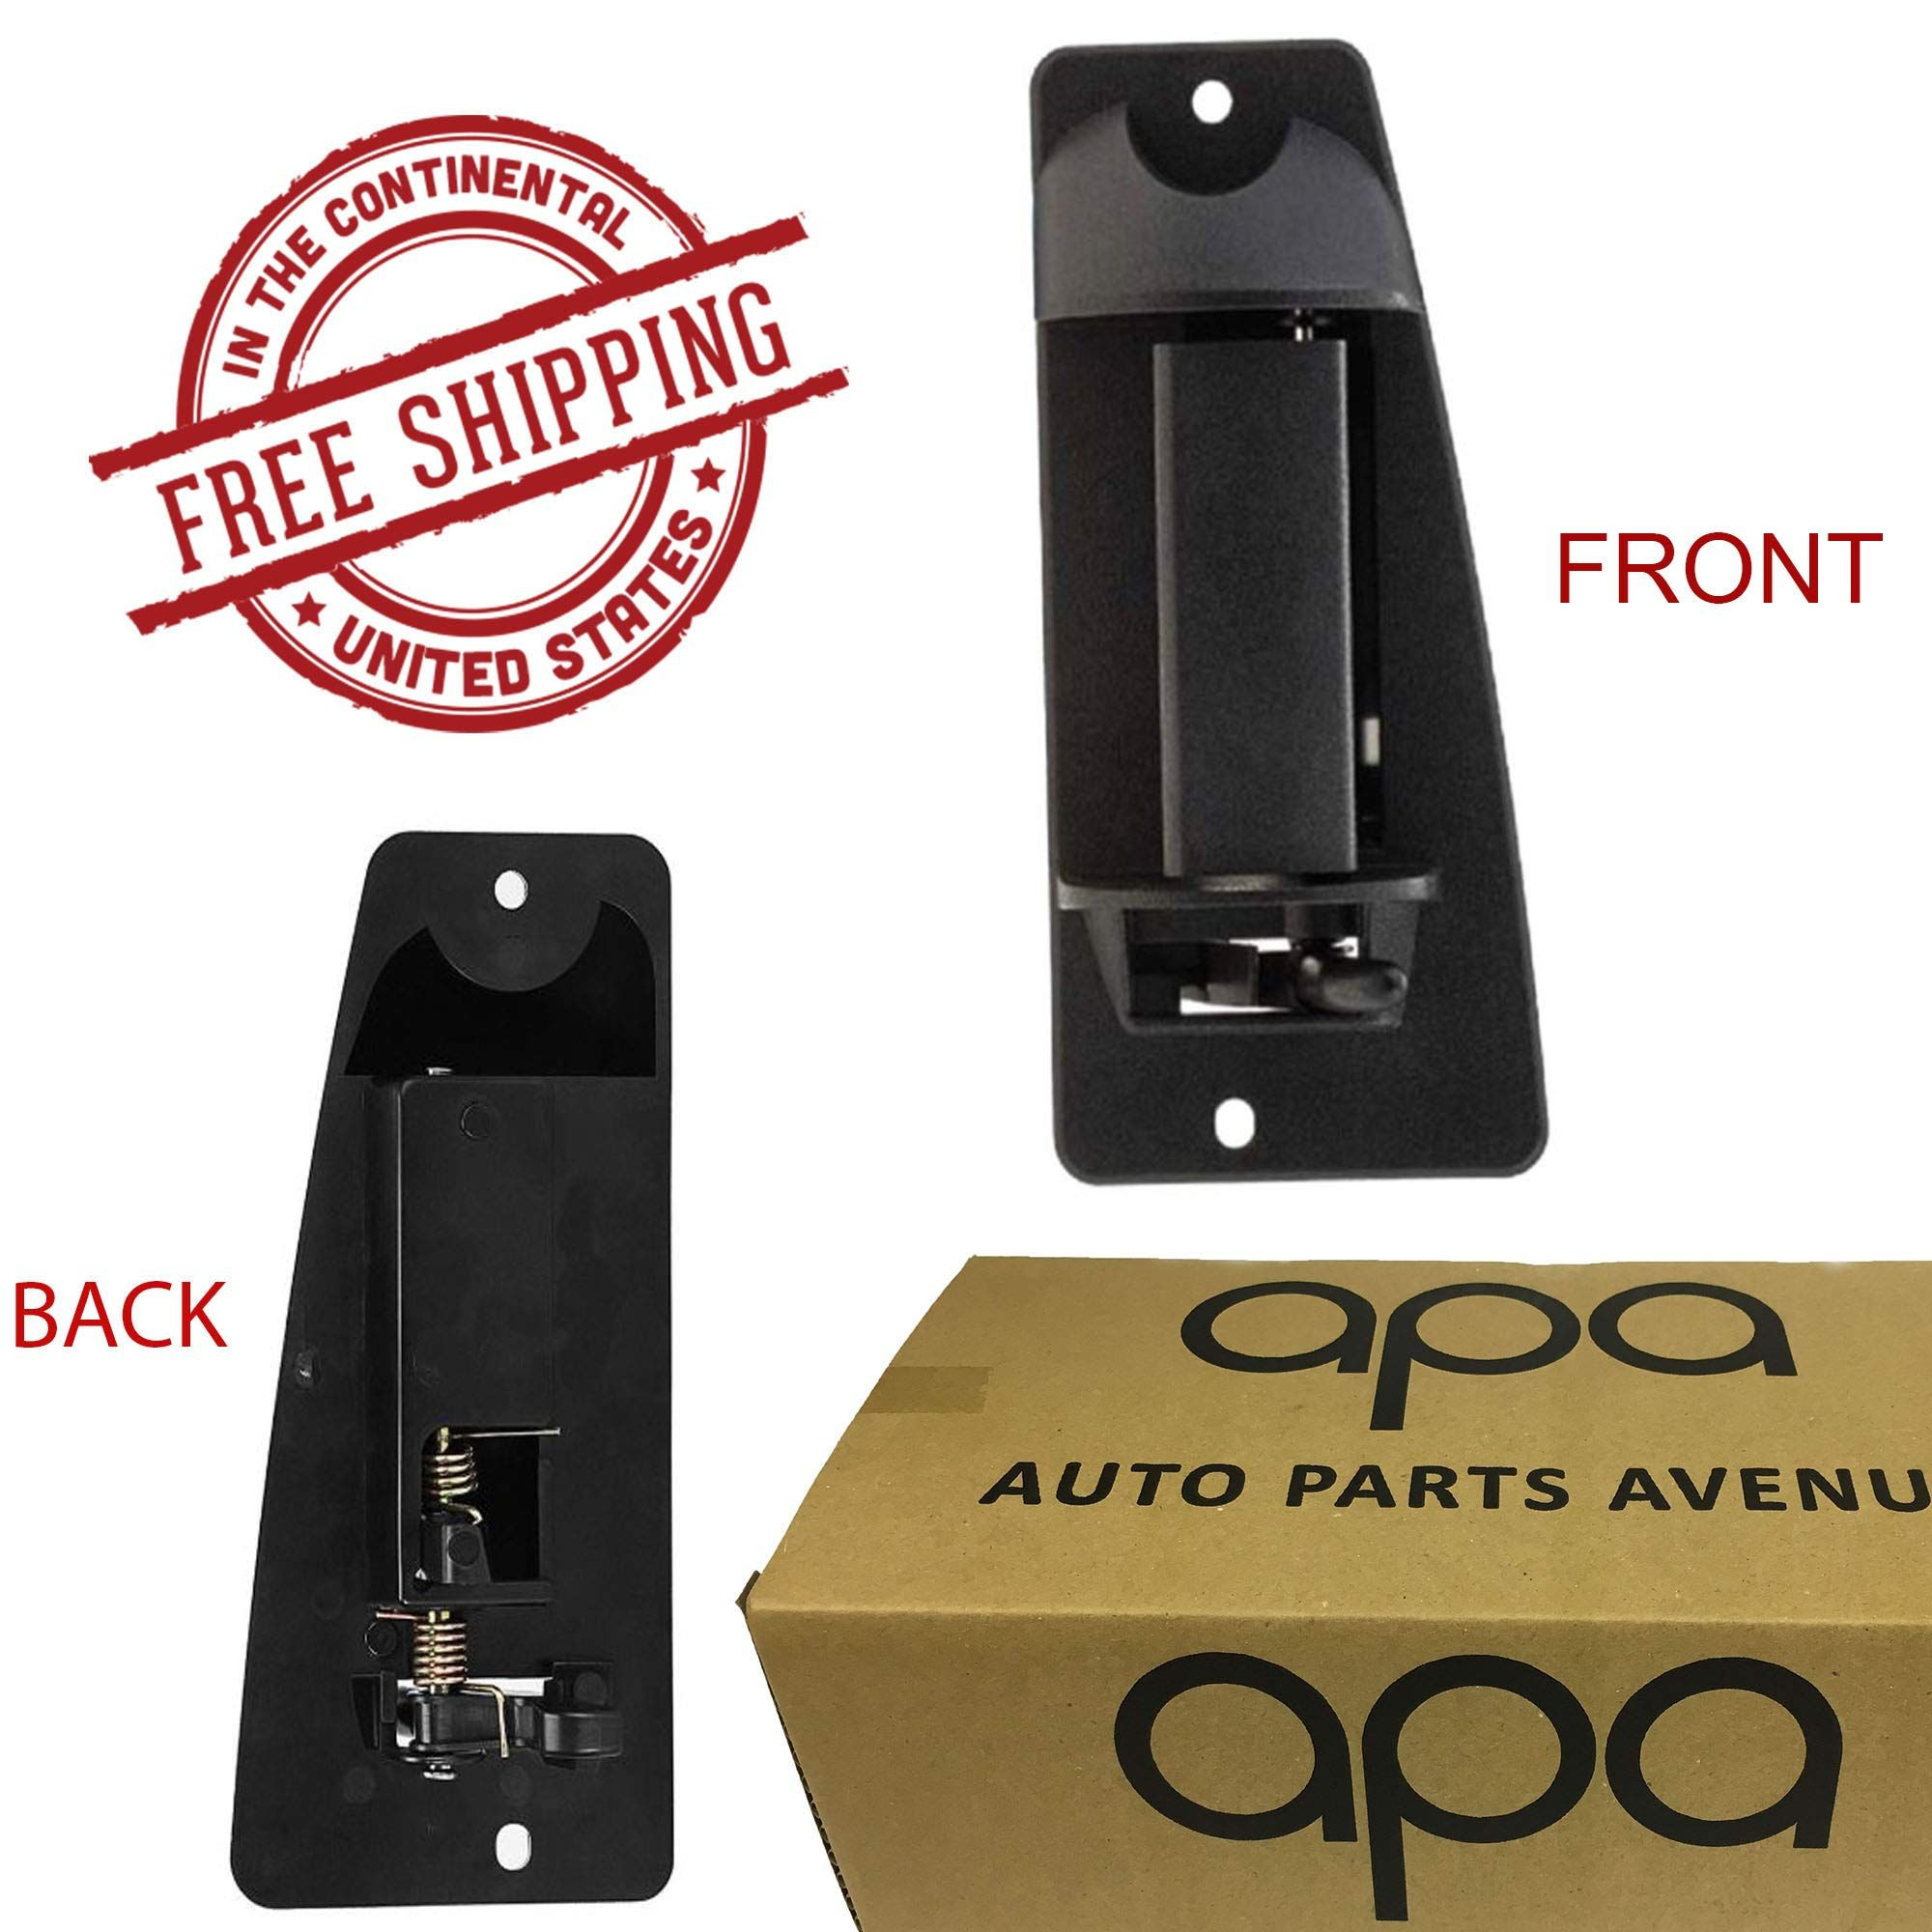 99 06 Chevy Silverado Gmc Sierra Extended Cab Rear Door Handle Lh Driver Side Ad Gmc Sierra Extended Silverad Chevy Silverado Extended Cab Silverado